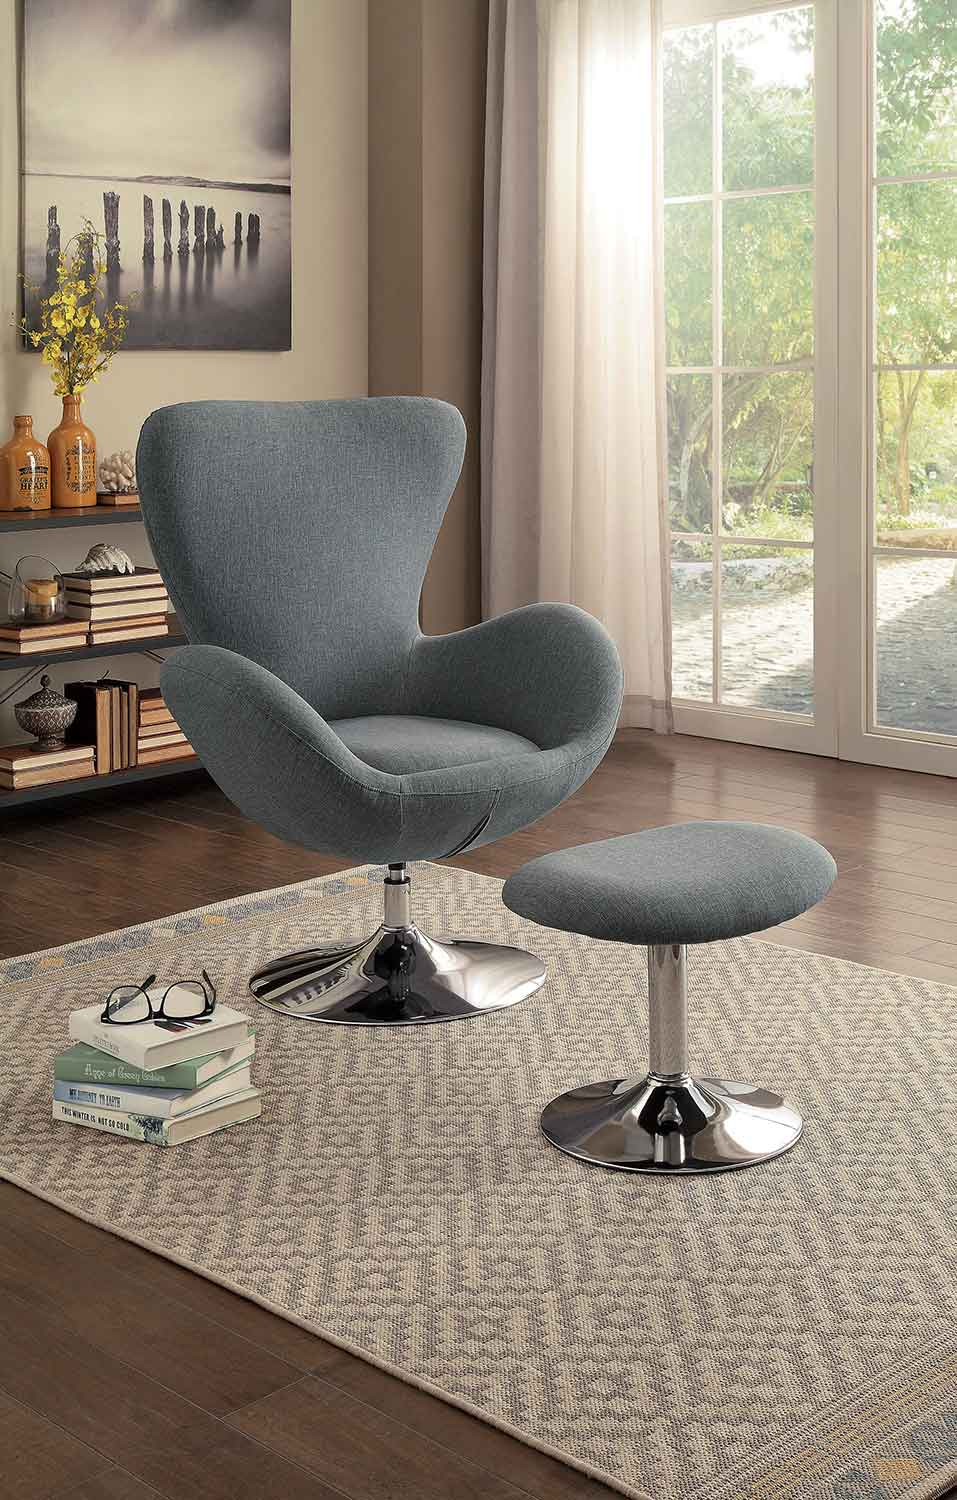 Fauteuil Inclinable Design Fauteuil Inclinable Gris